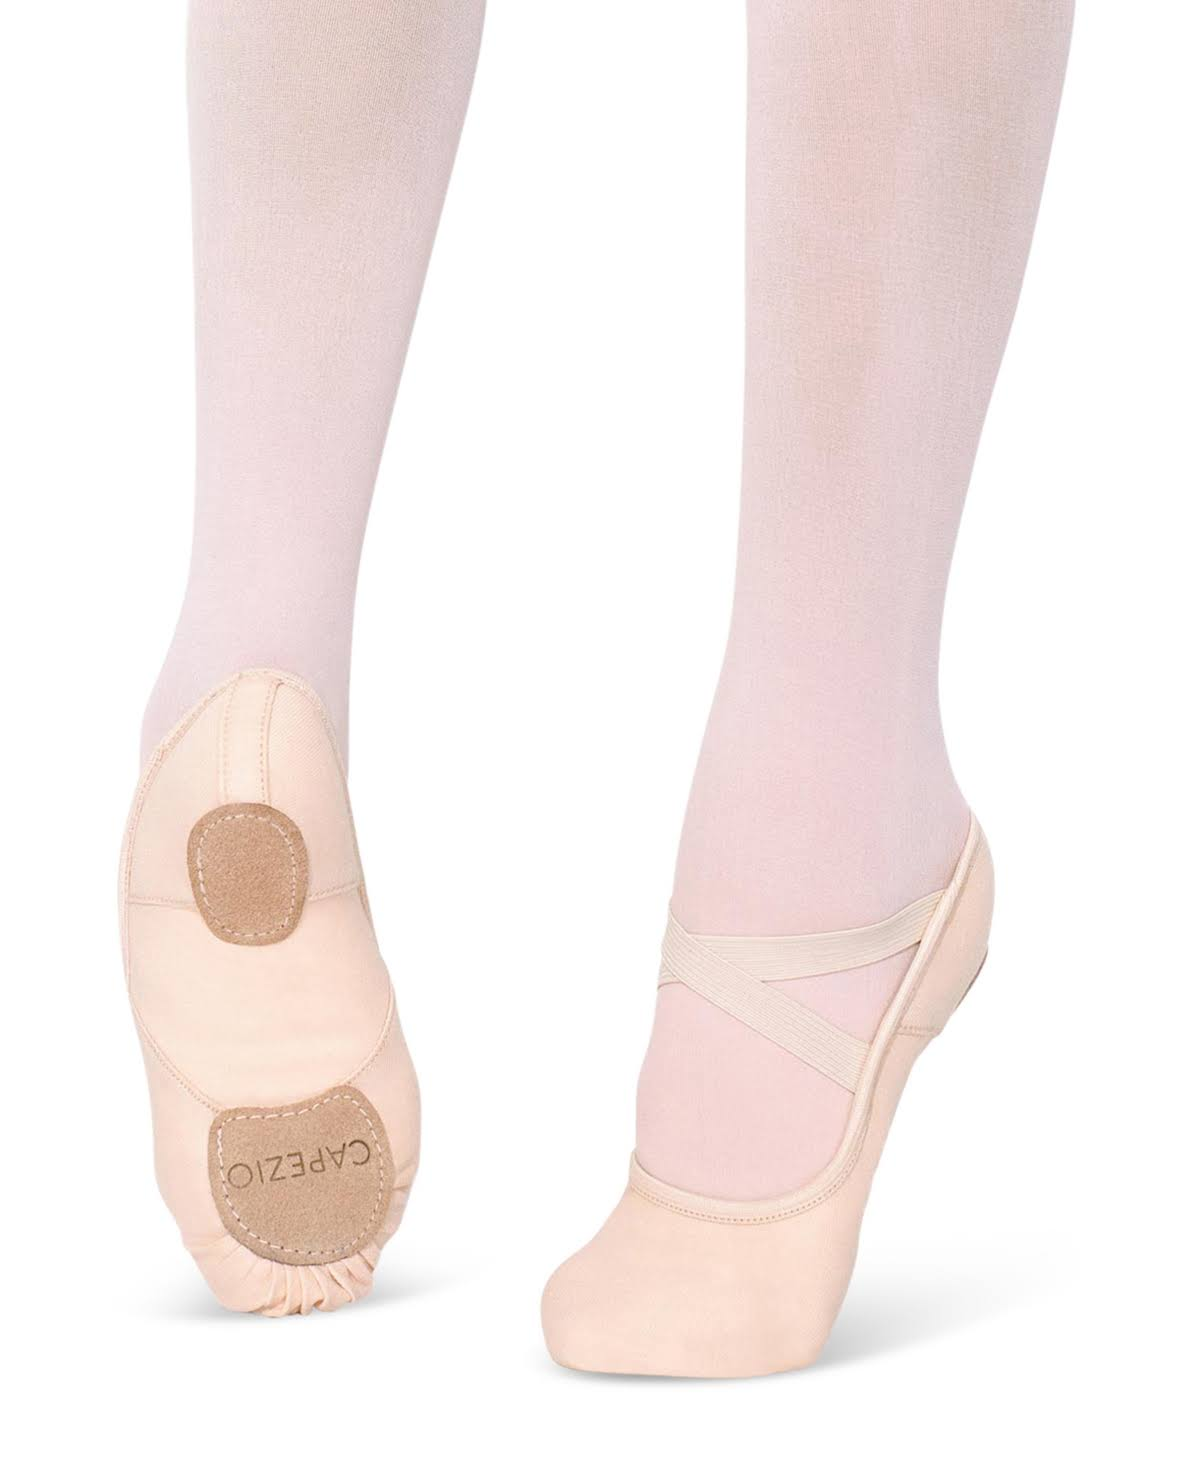 Capezio 2037w Ladies Split Sole Hanami Dance Ballet Shoes - Pink, 5 UK